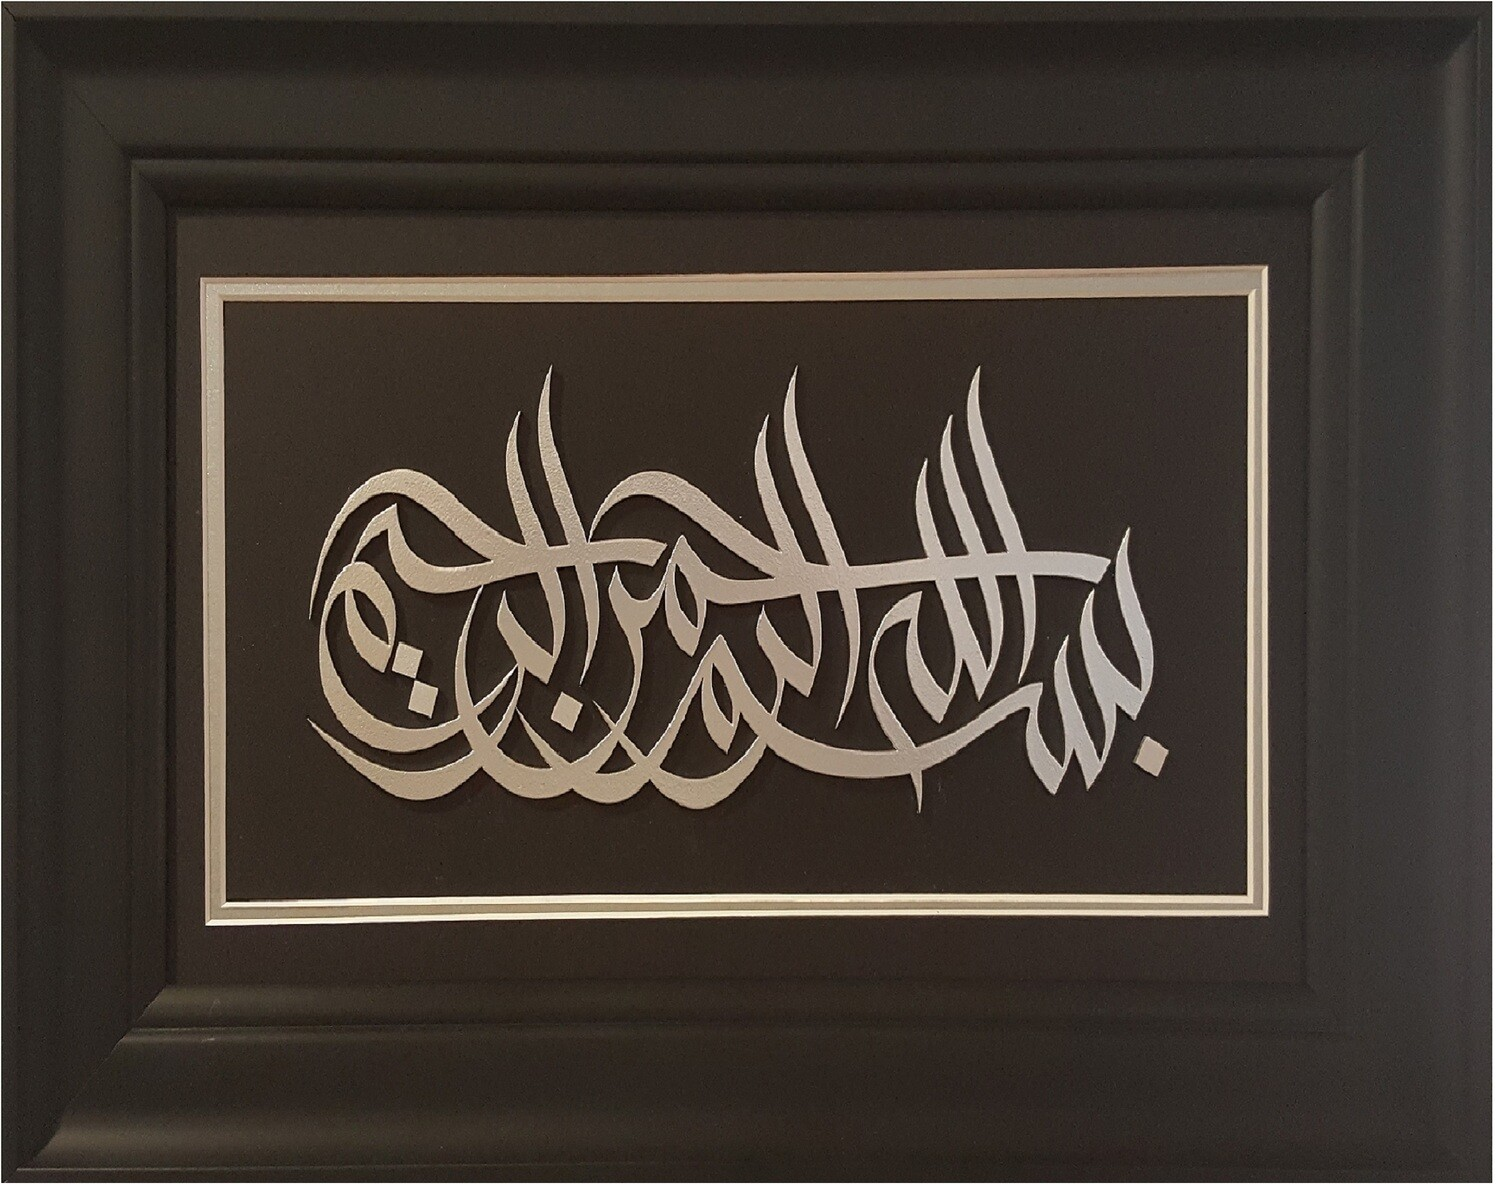 Bismillah 3D Silver Sunbuli Calligraphy Design in Black Curved Frame